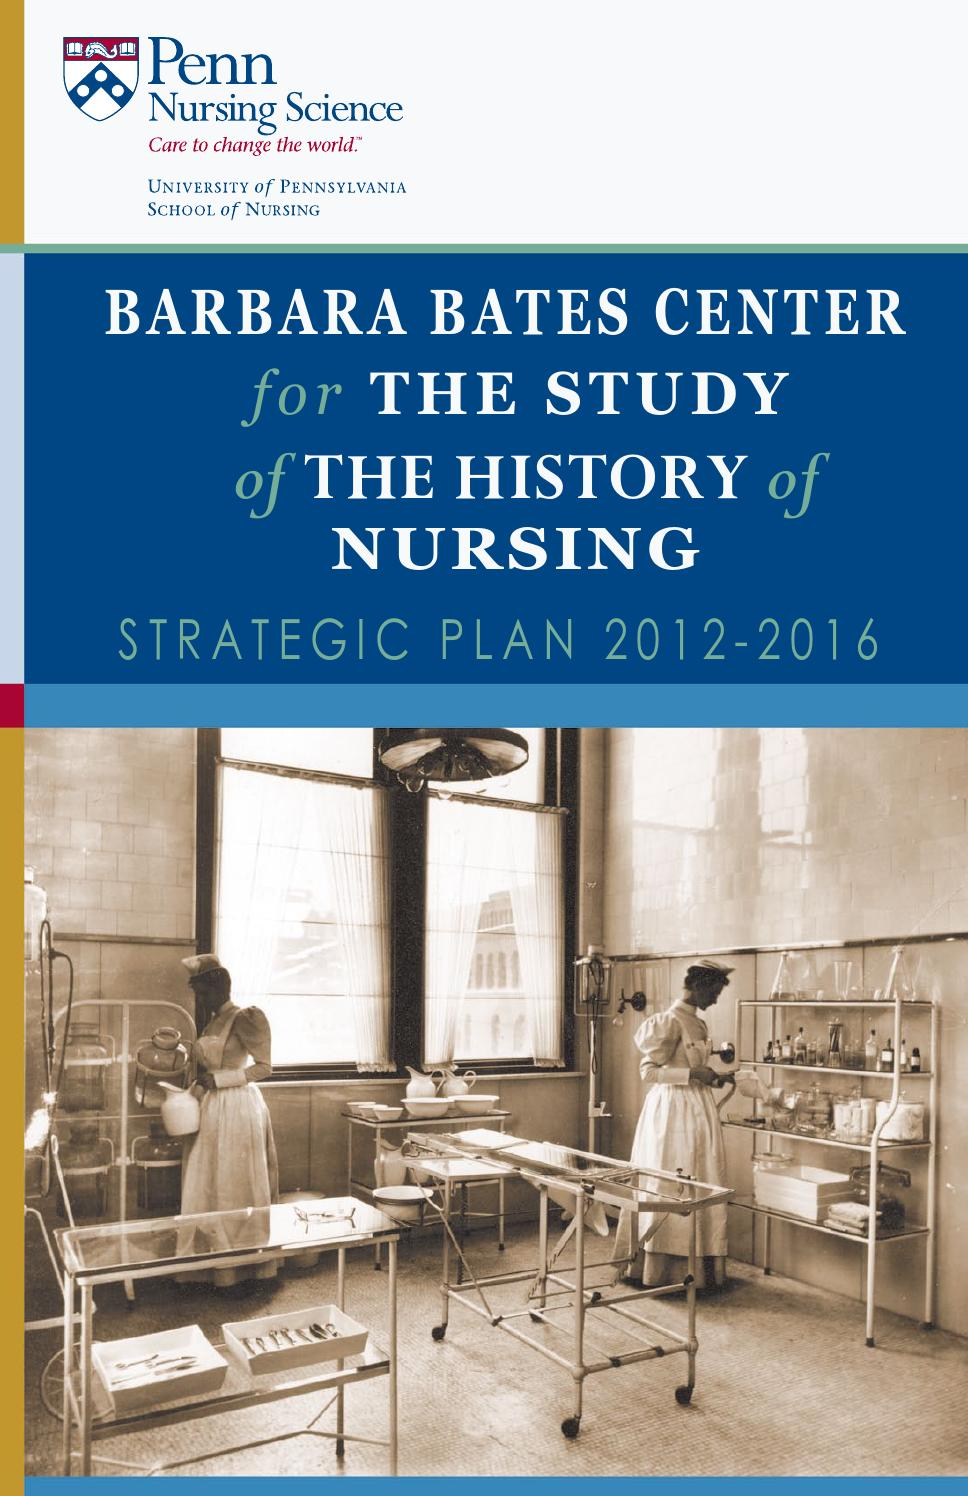 Barbara Bates Center For The Study Of The History Of Nursing Strategic Plan 2012 2016 By Barbara Bates Center For The Study Of The History Of Nursing Issuu